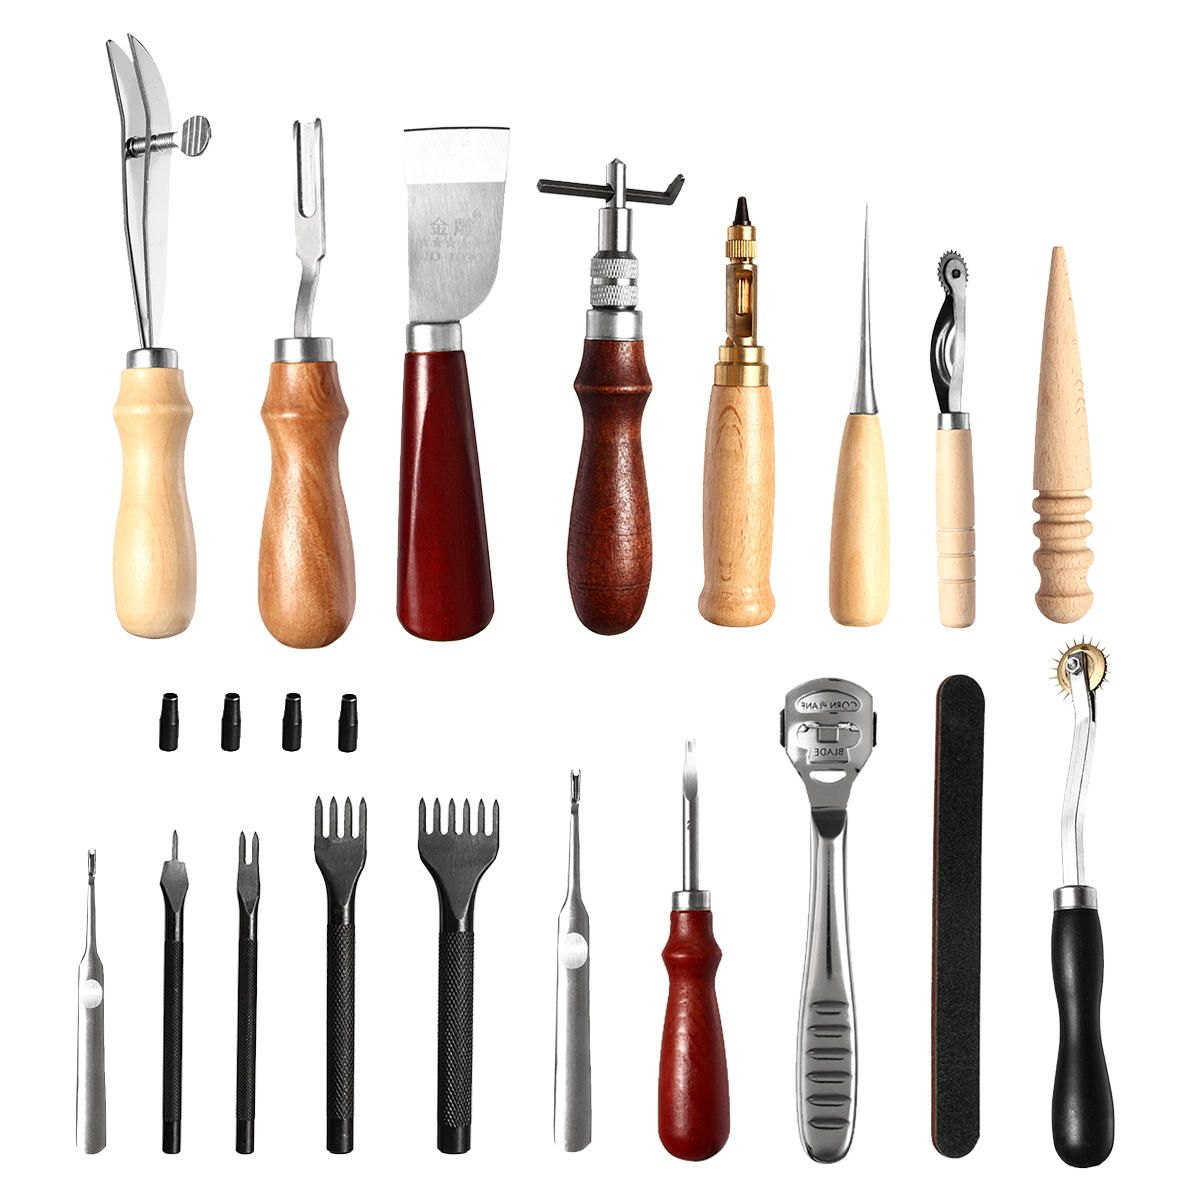 Leather Craft Tool Kit 18pcs Stitching Carving Working Sewing Saddle Groover Leather Craft DIY Tool